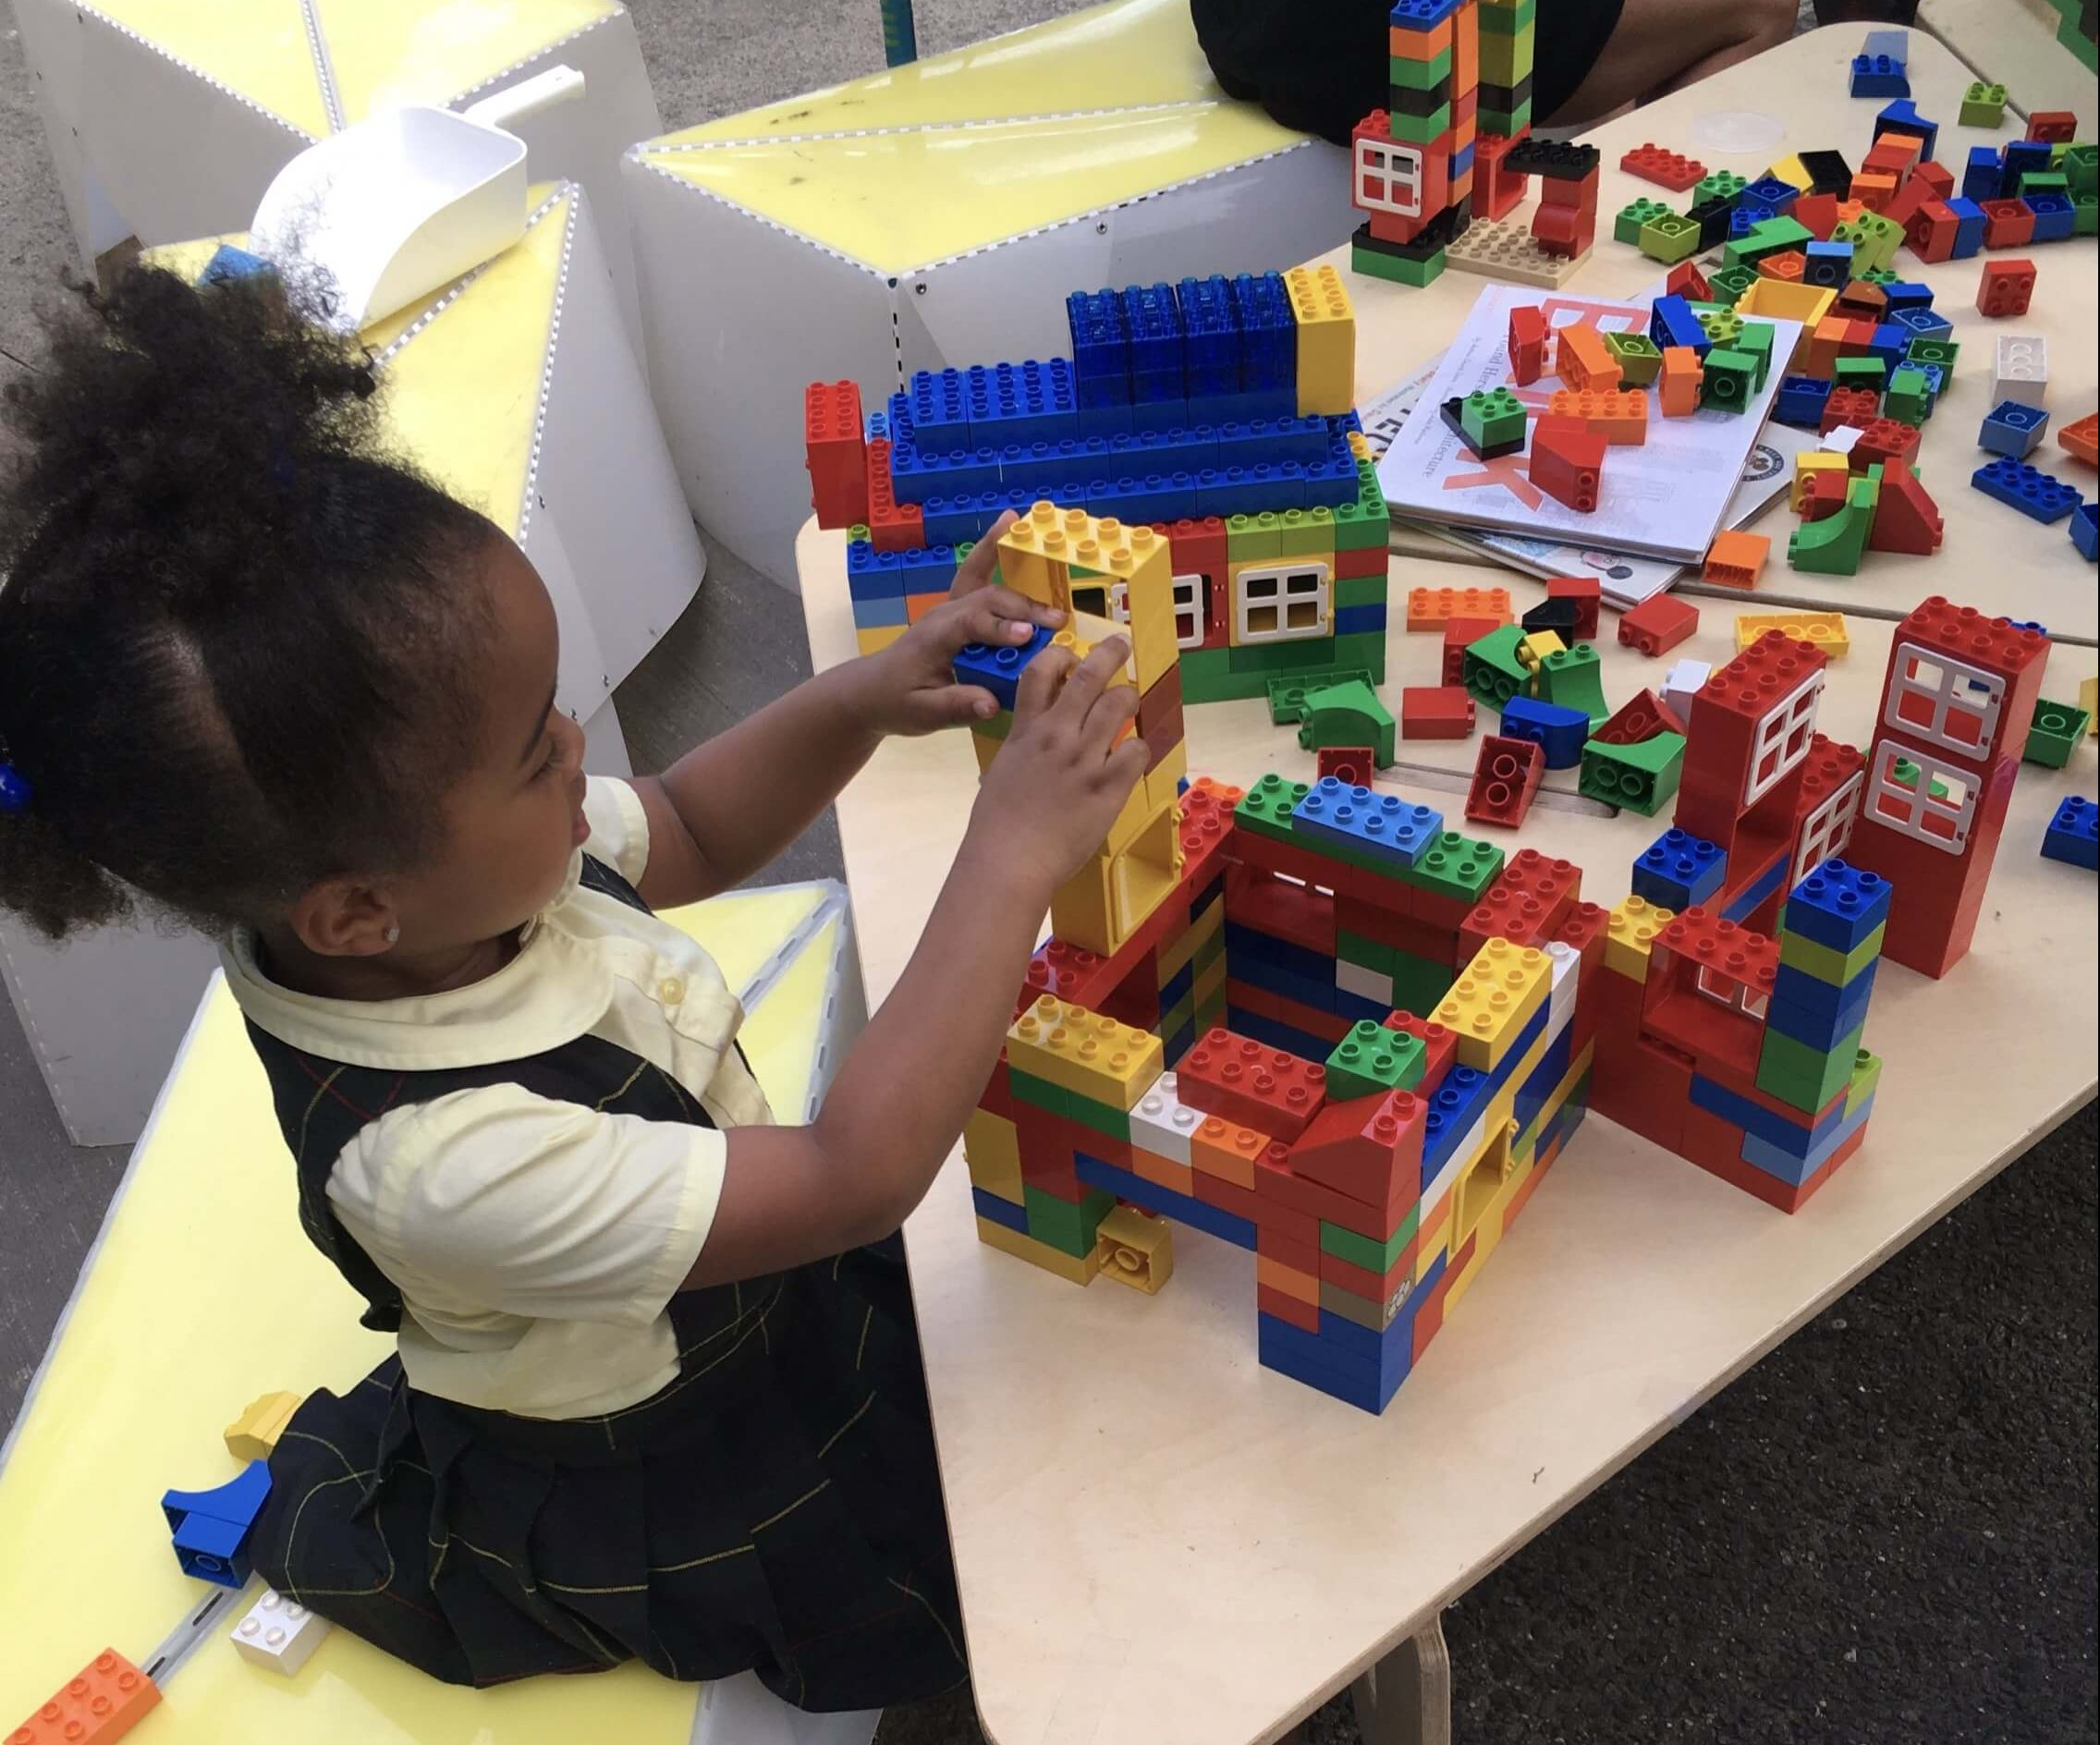 Little girl seated building with LEGO bricks